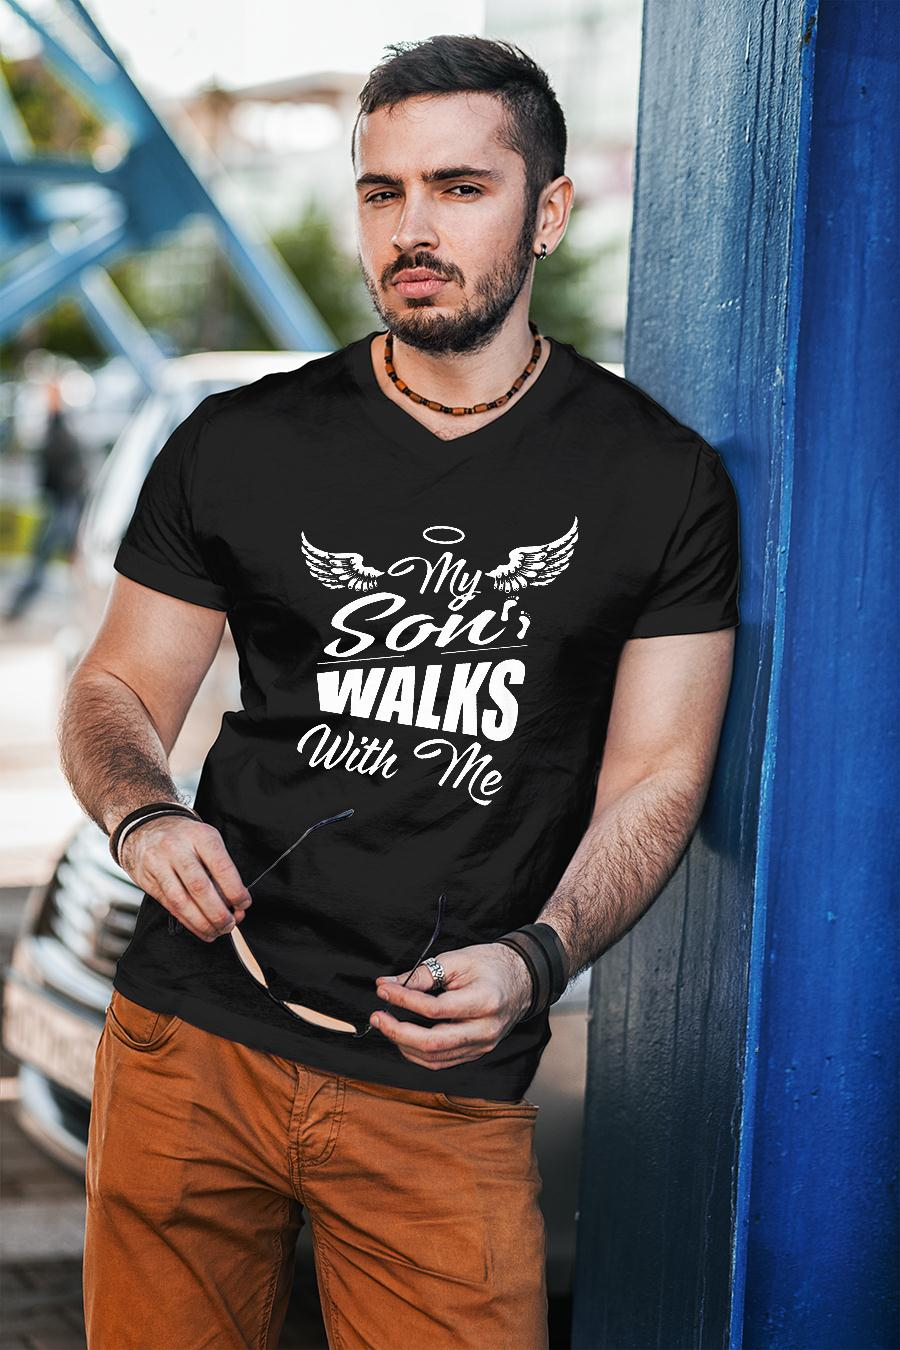 My son walks with me shirt unisex